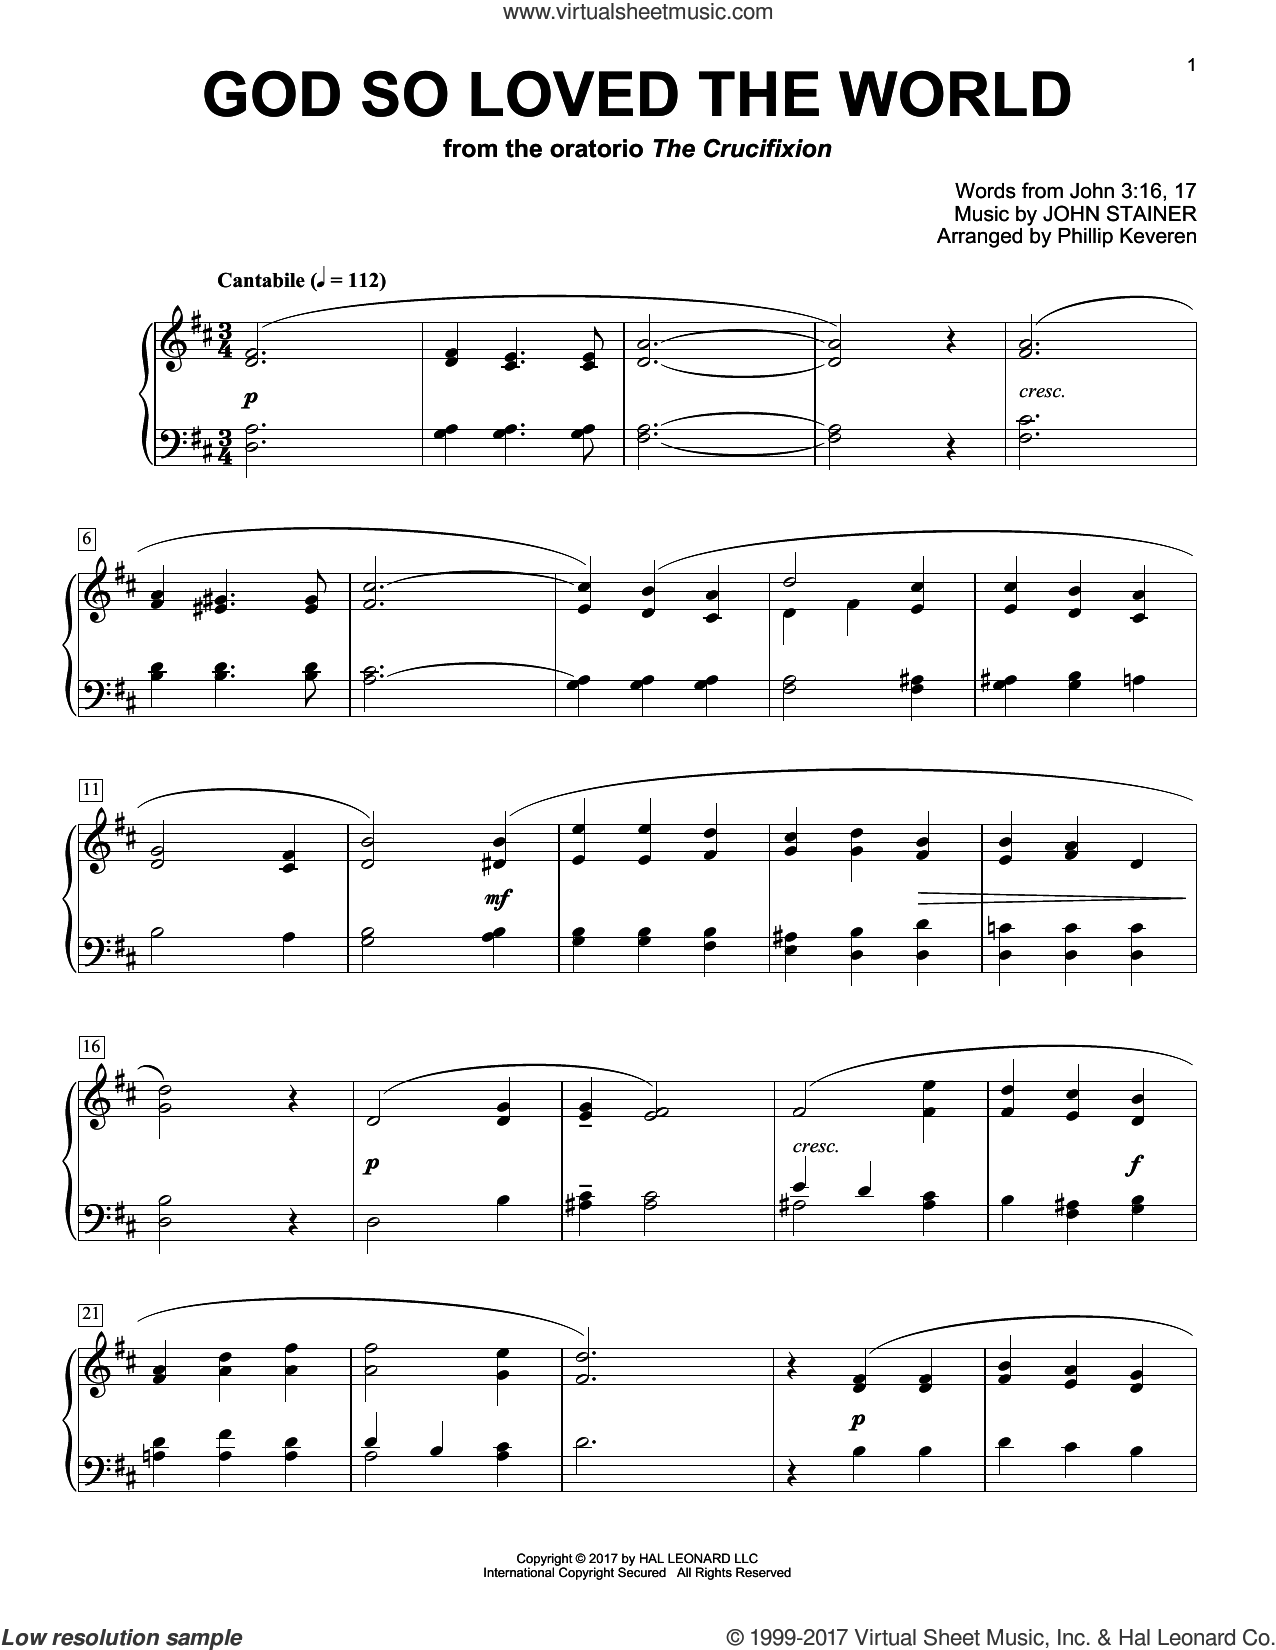 God So Loved The World sheet music for piano solo by John Stainer, Phillip Keveren and Miscellaneous, classical score, intermediate skill level